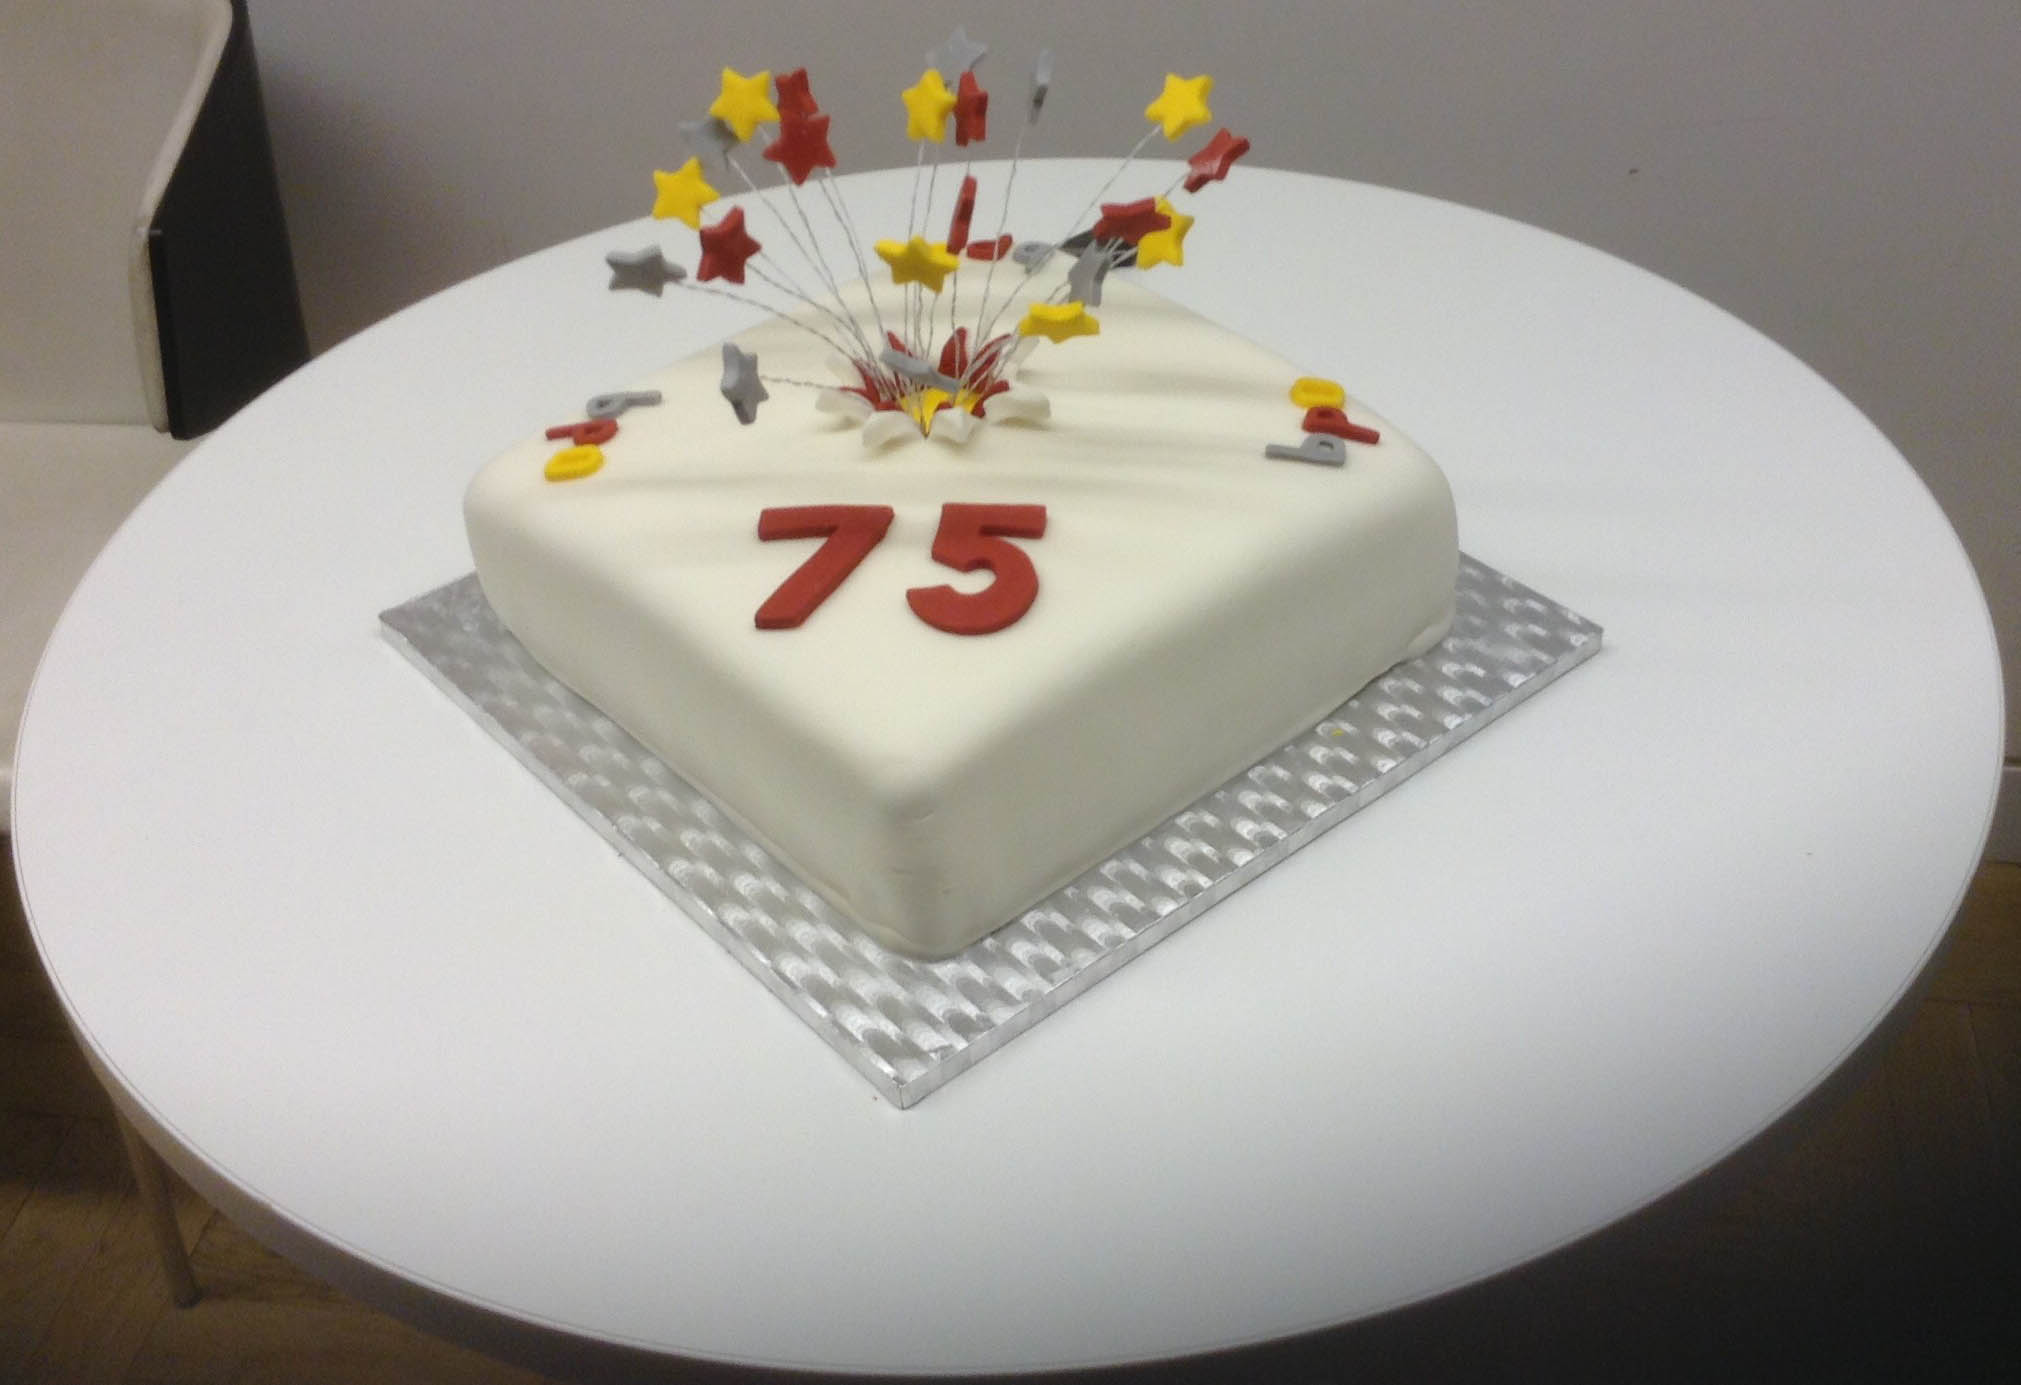 Our 75th Birthday Cake